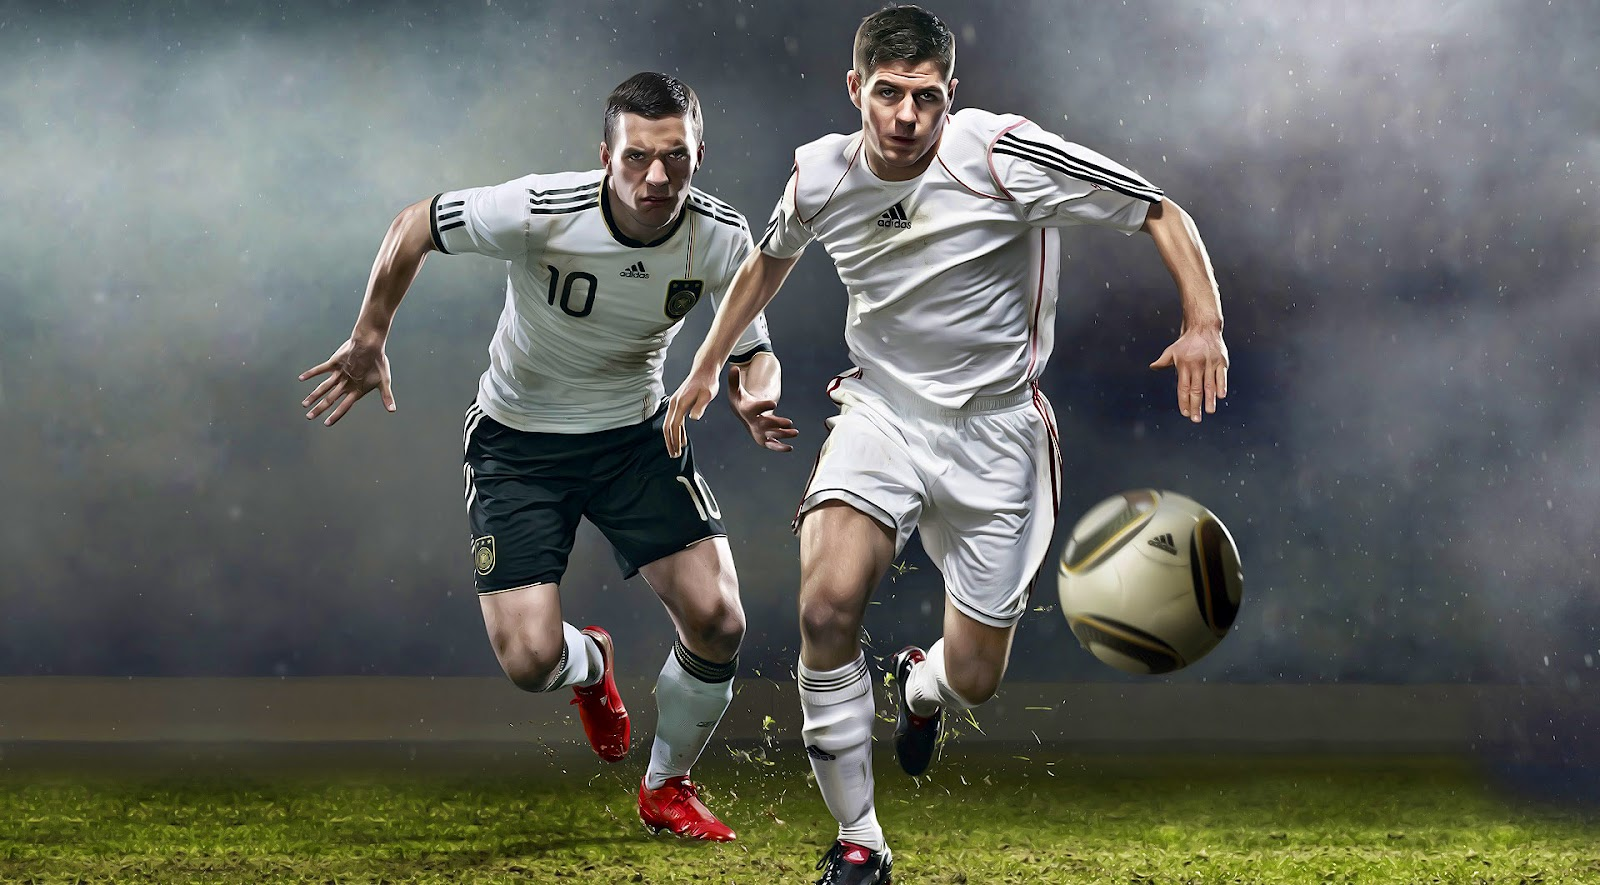 Wallpapers Of Football Players Images amp Pictures   Becuo 1600x885